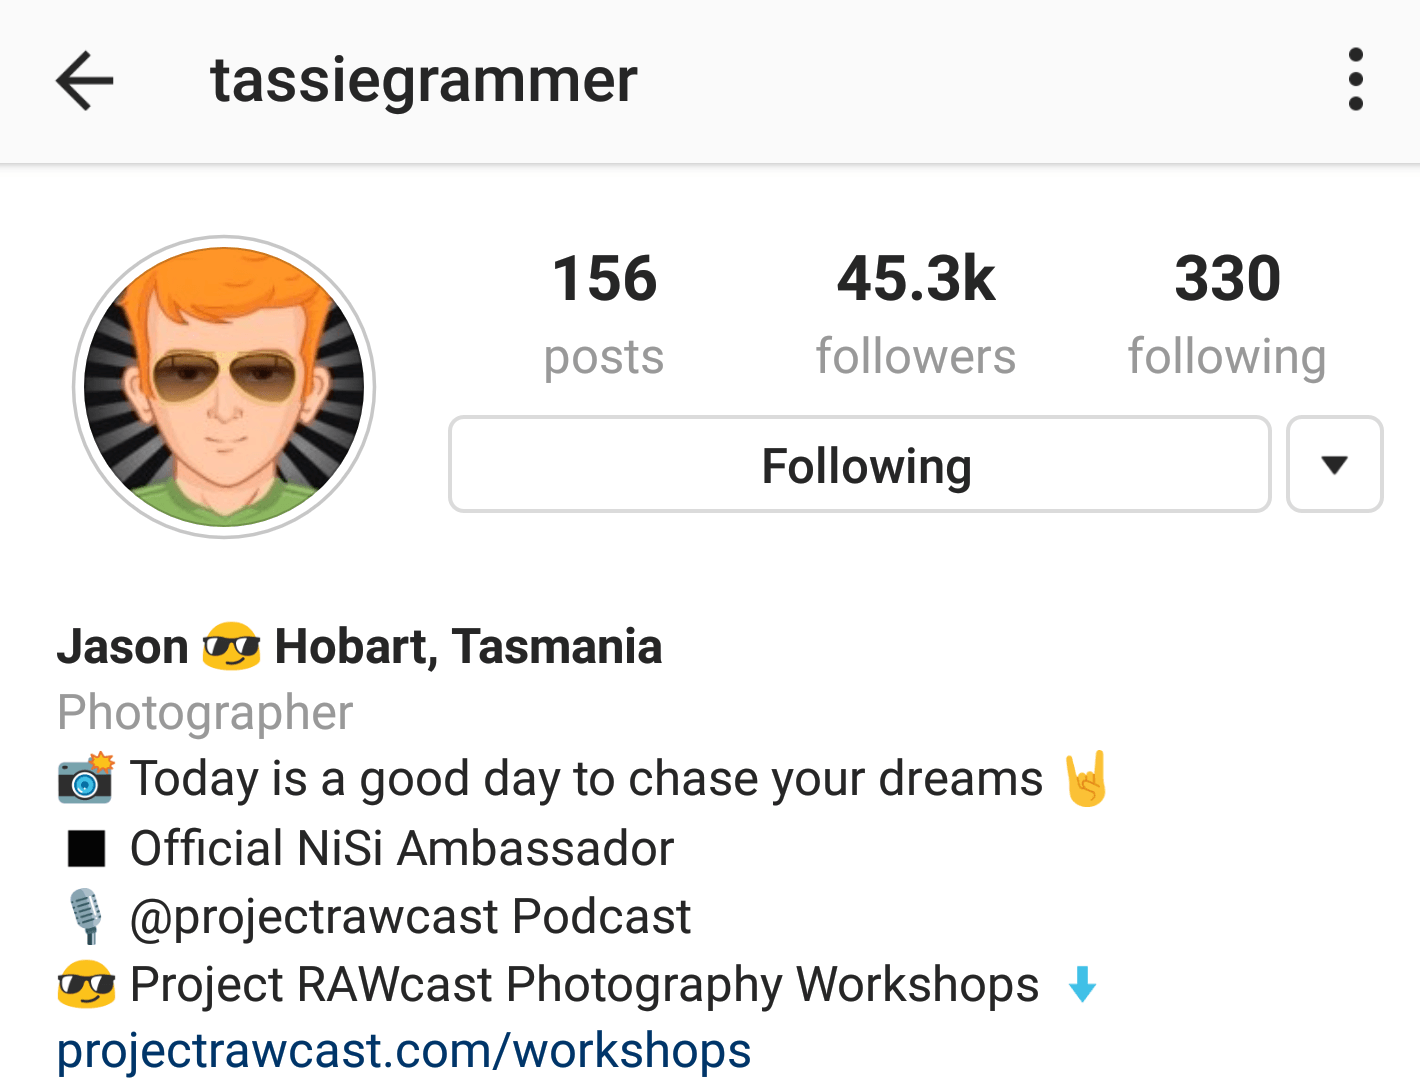 Savage Instagram Bio  - savage instagram bio - 500+ Best Instagram Bio for Boys 2020 (Swag Cool Creative Emoji)